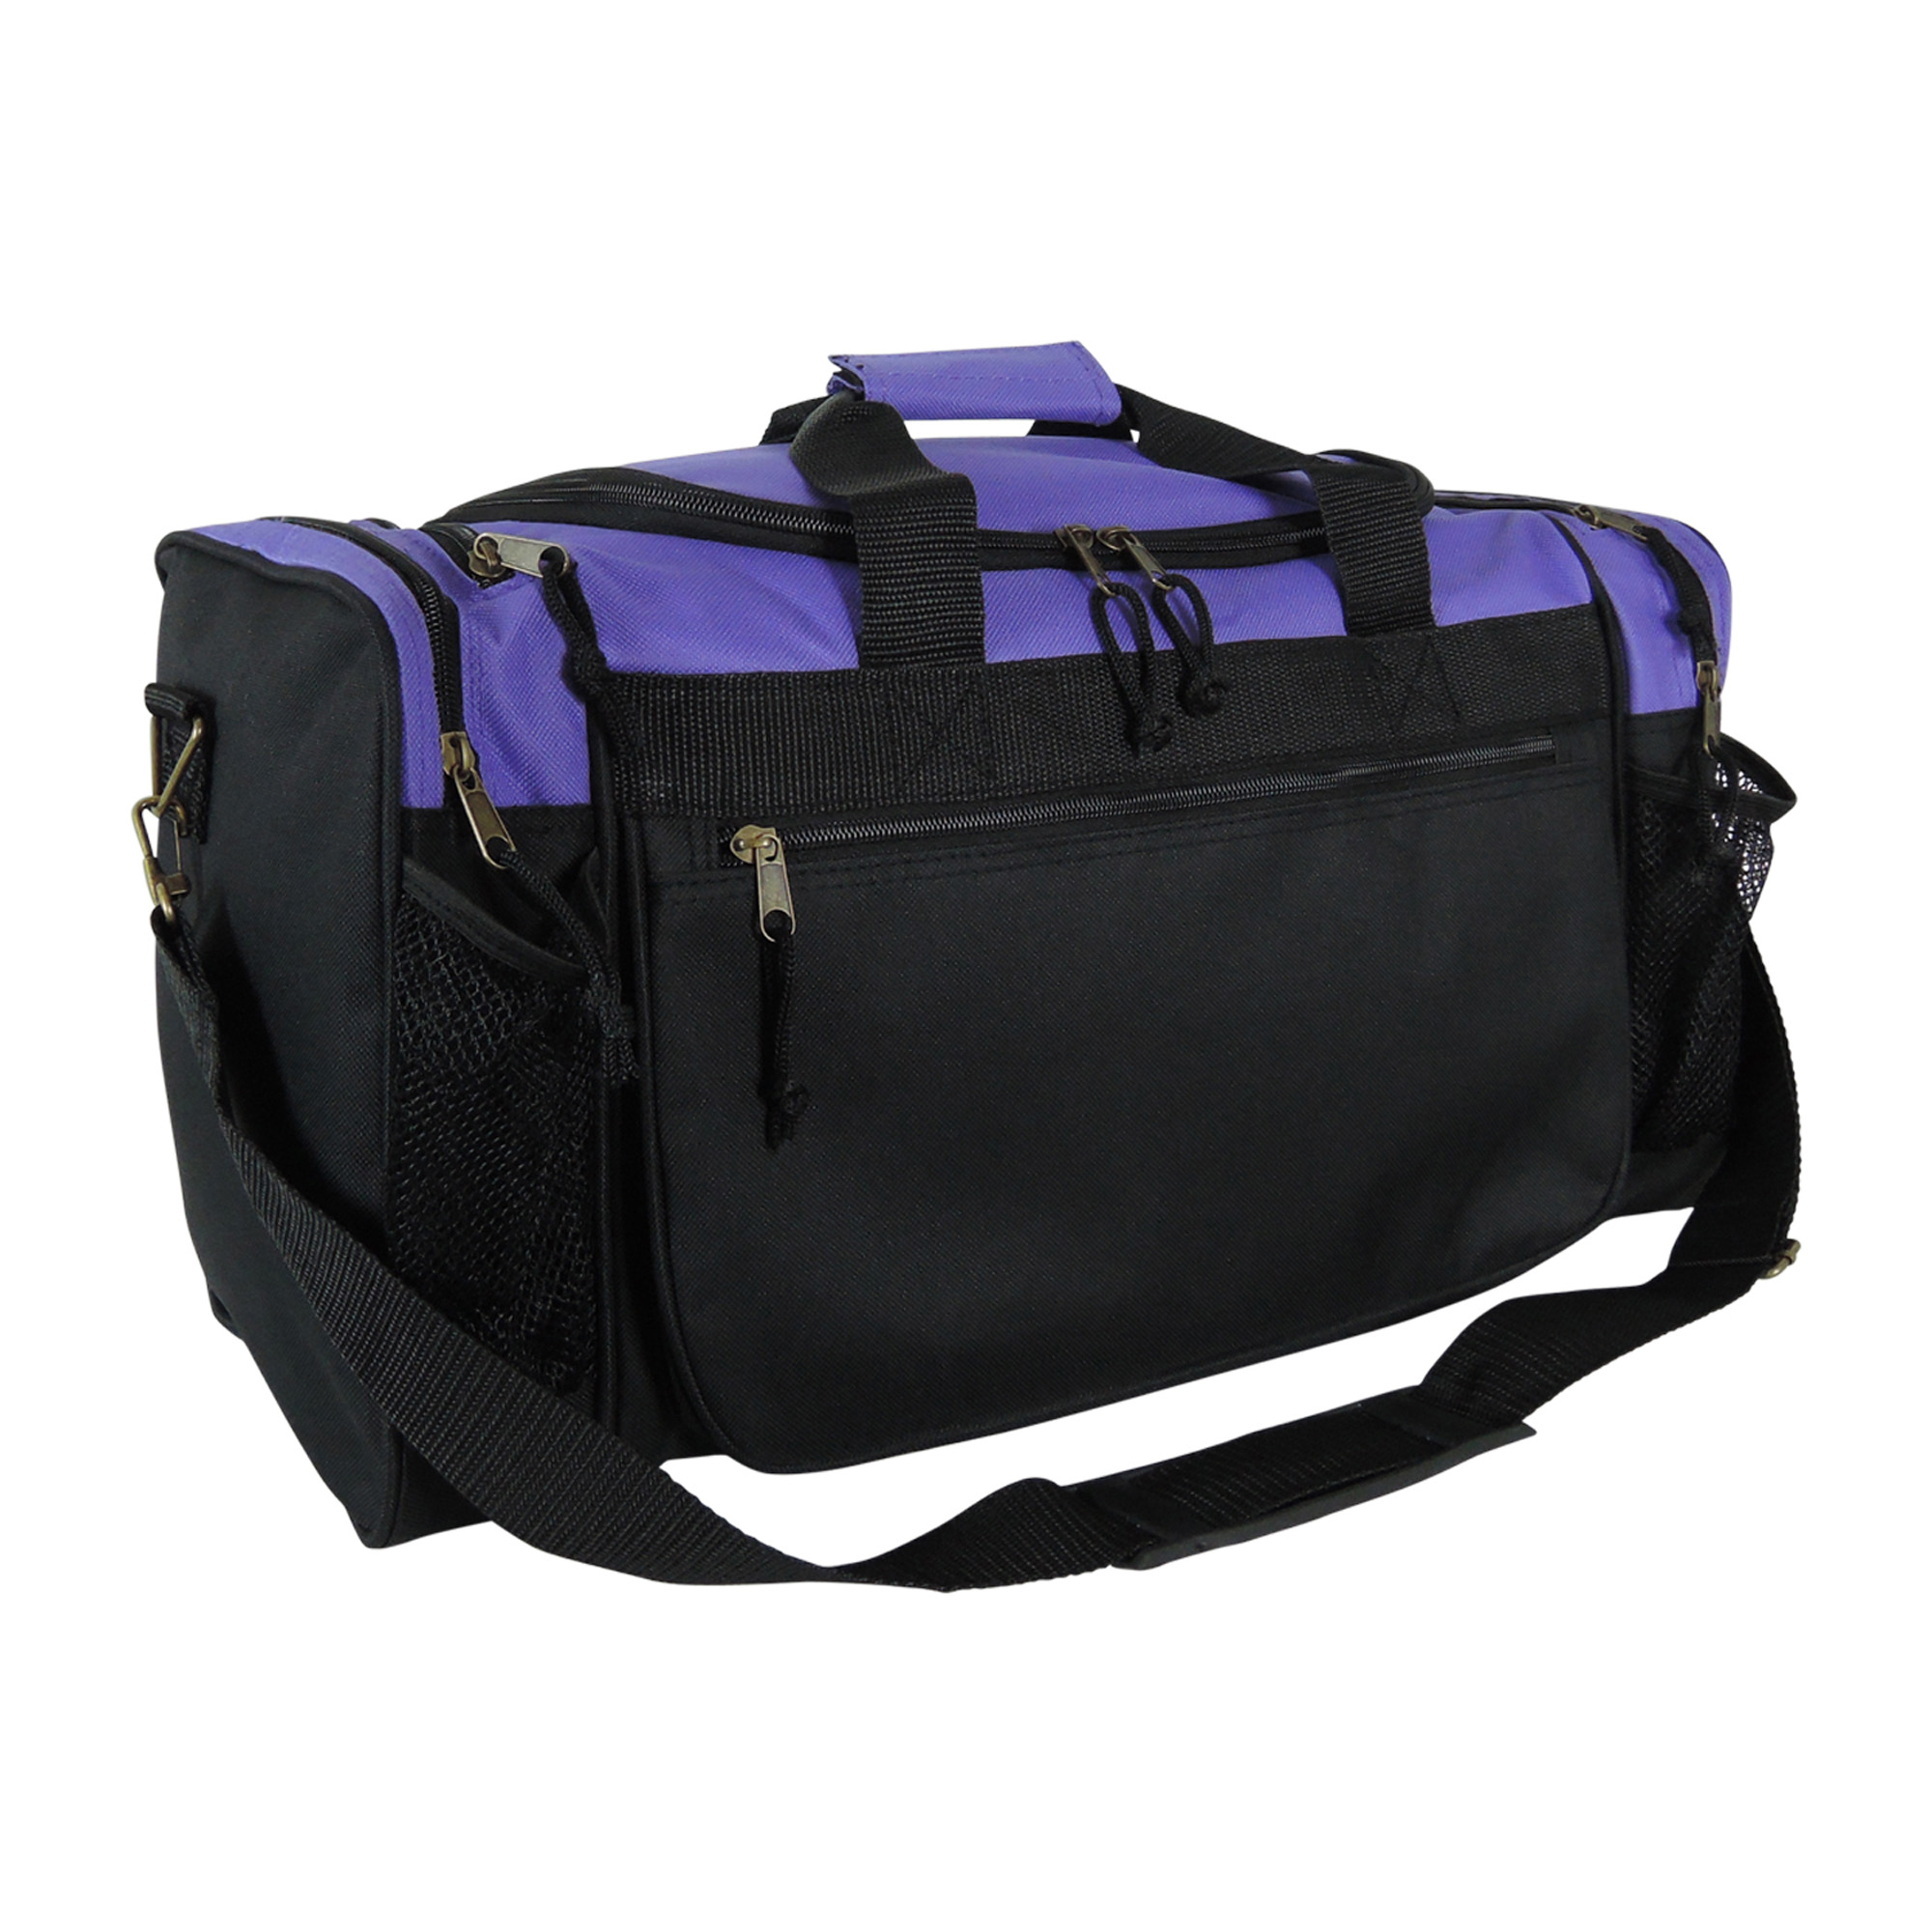 "DALIX 20"" Sports Duffle Bag w Water Bottle Mesh and Valuables Pockets in Black"